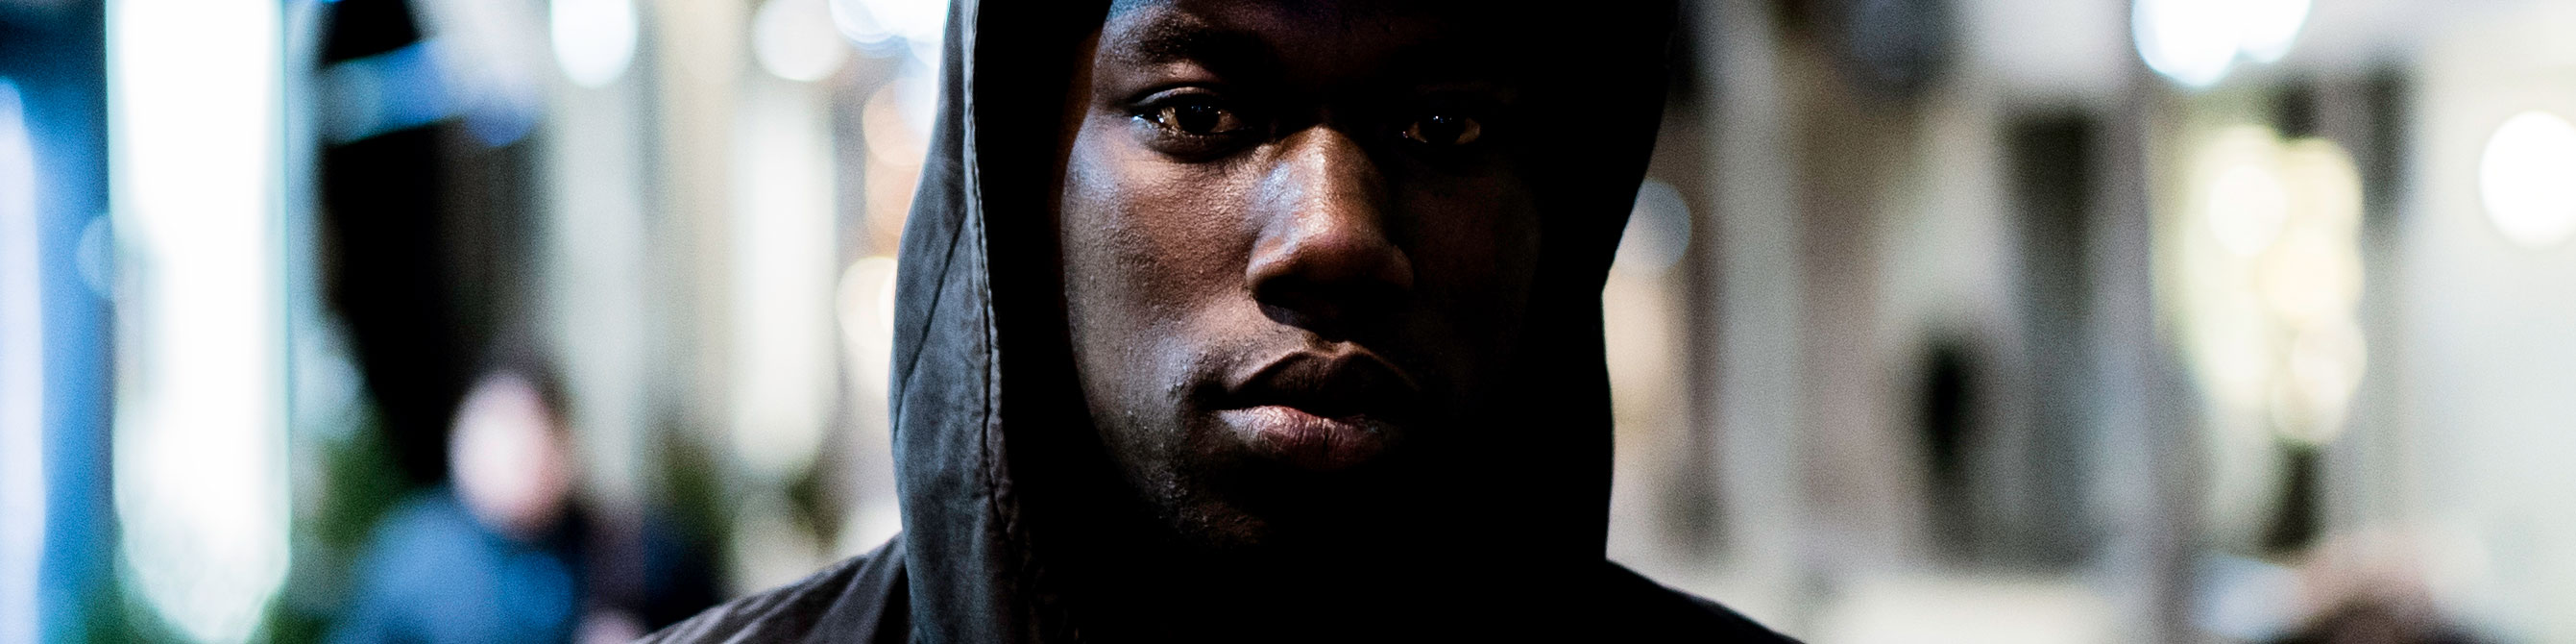 Negre de merda | Documental